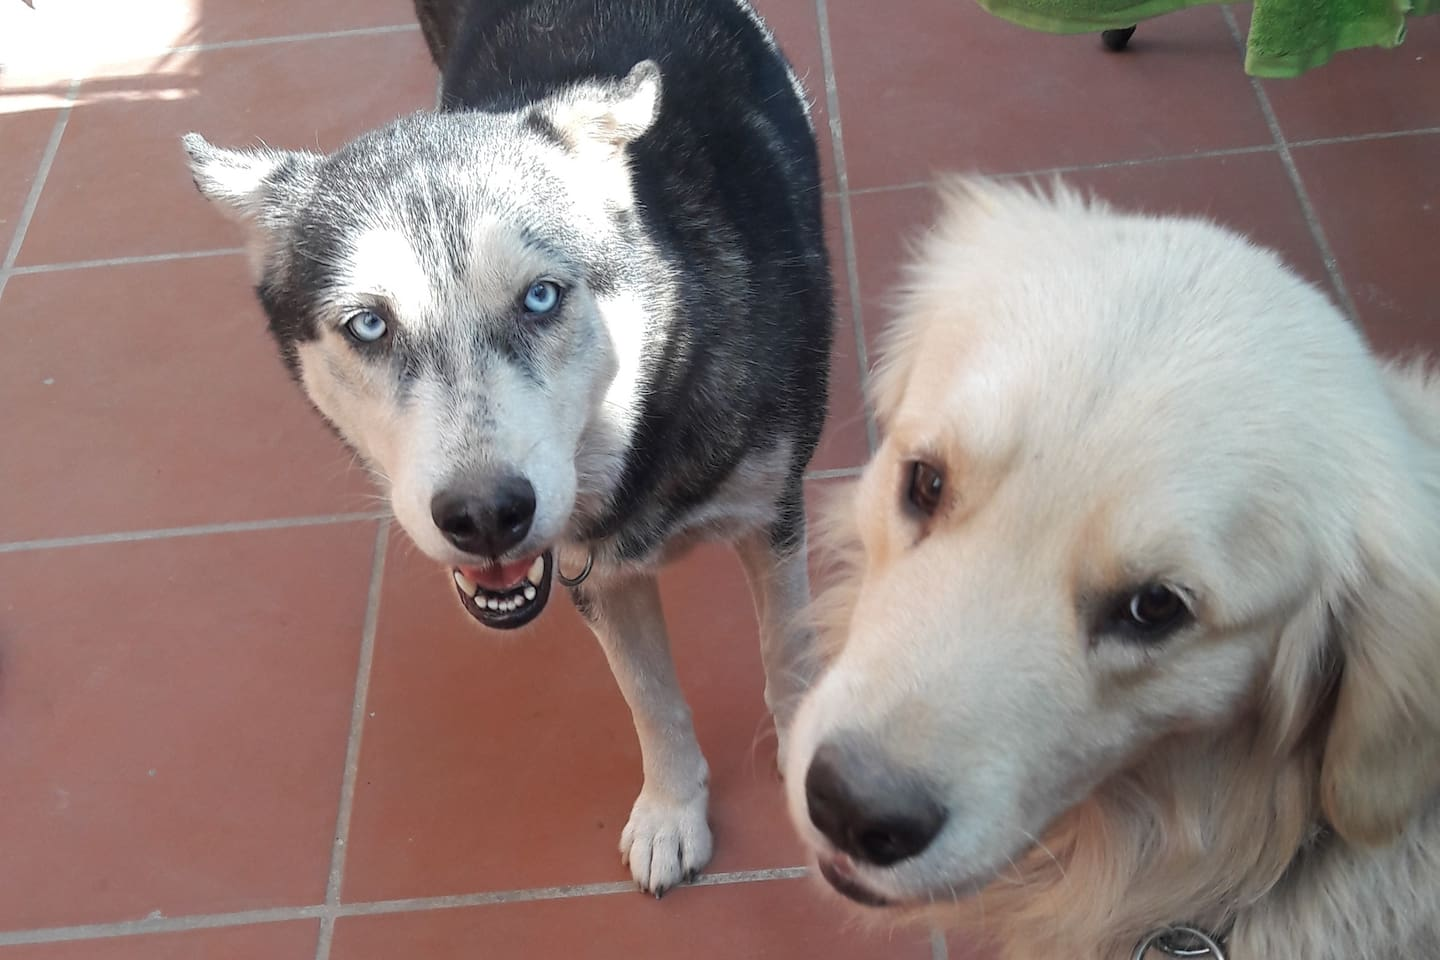 We are Cuci and Leo, part of the family. We are living in the garden . We are very friendly and happy dogs. We will be good friends